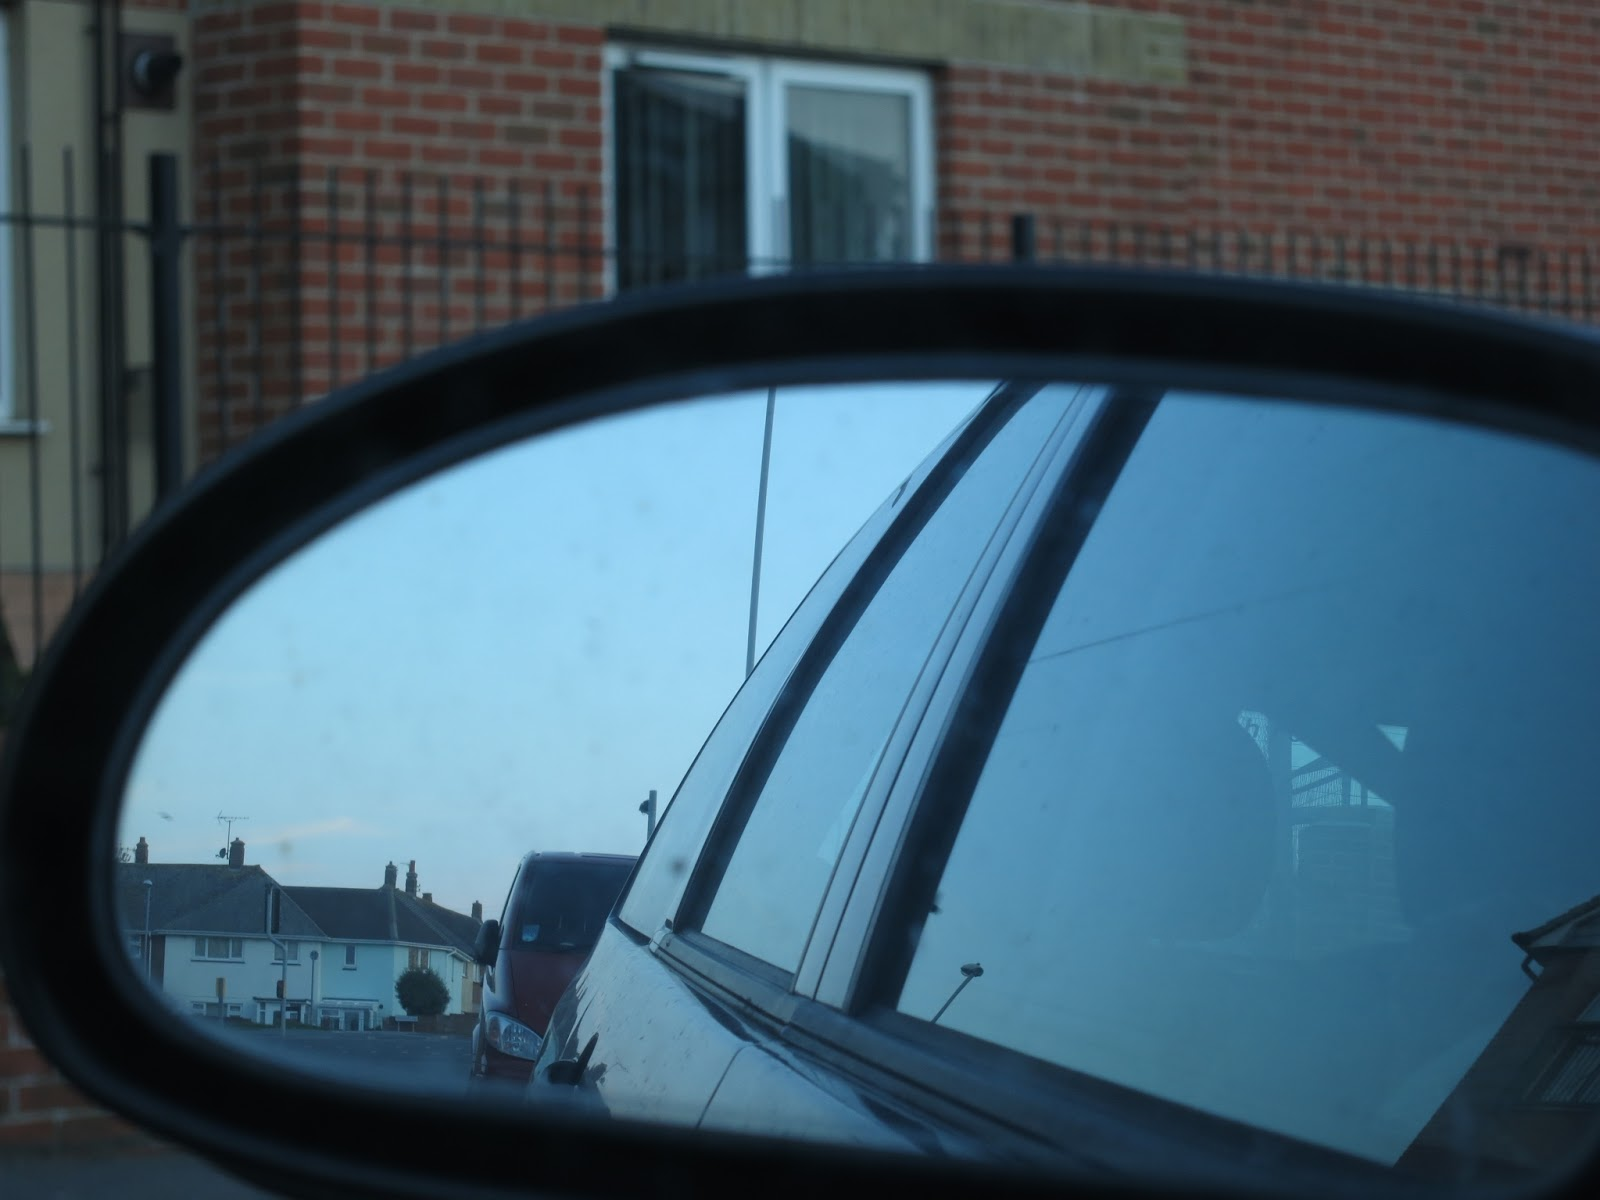 White houses with grey tiled roofs reflected in mirror of car parked in front of red bricked flats